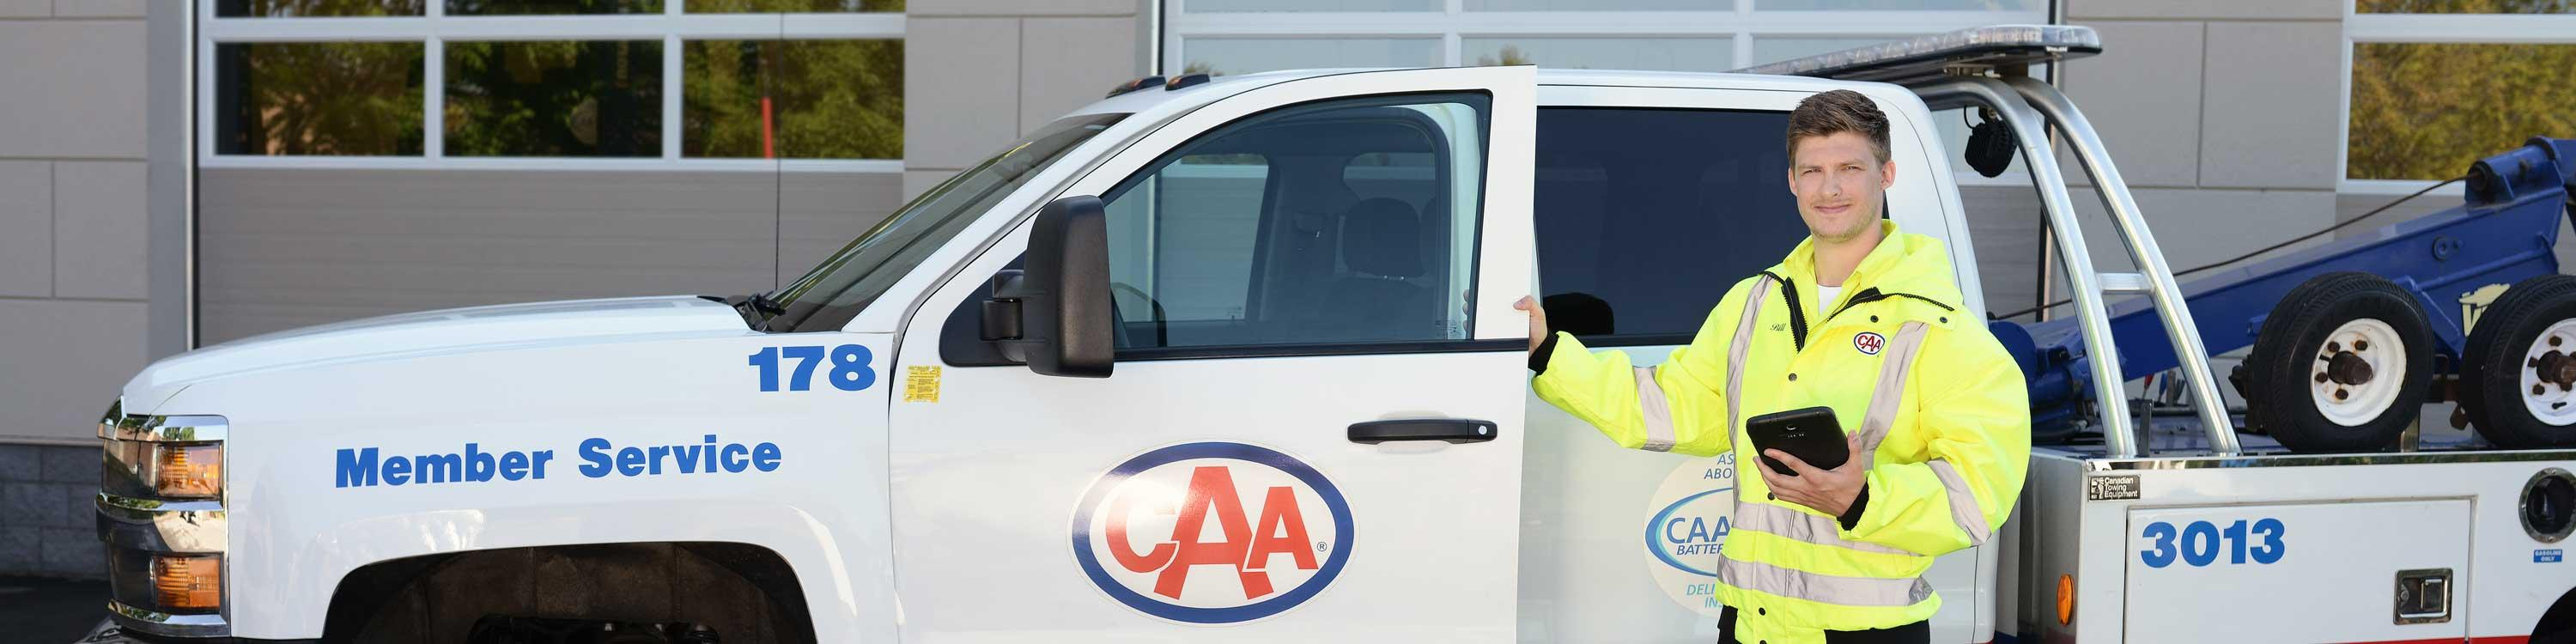 CAA Driver holding tablet